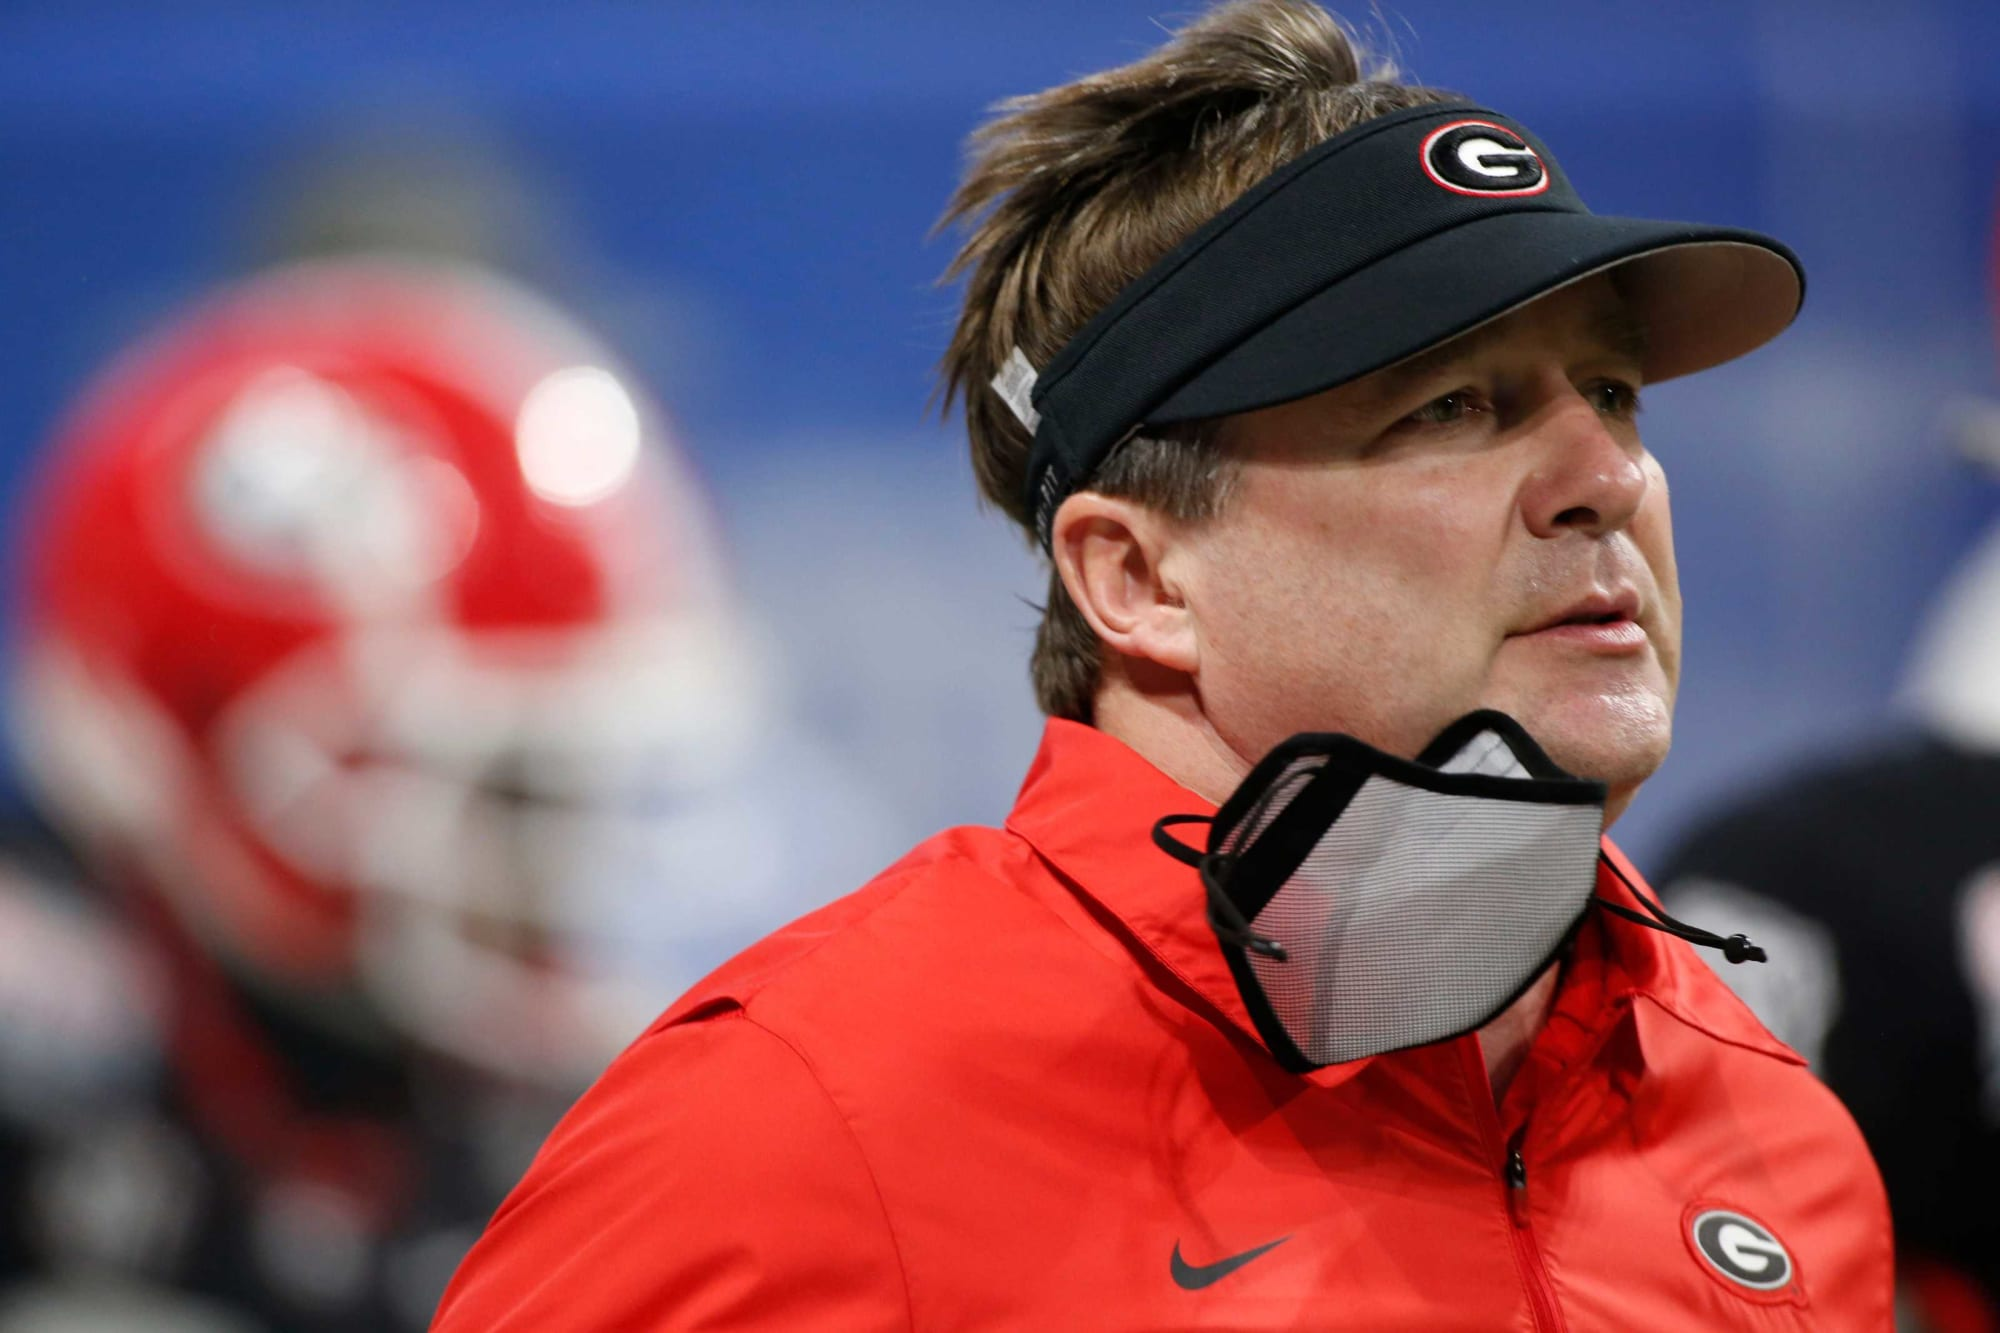 Georgia football: 1 can't-miss recruit Kirby Smart needs to sign this recruiting class